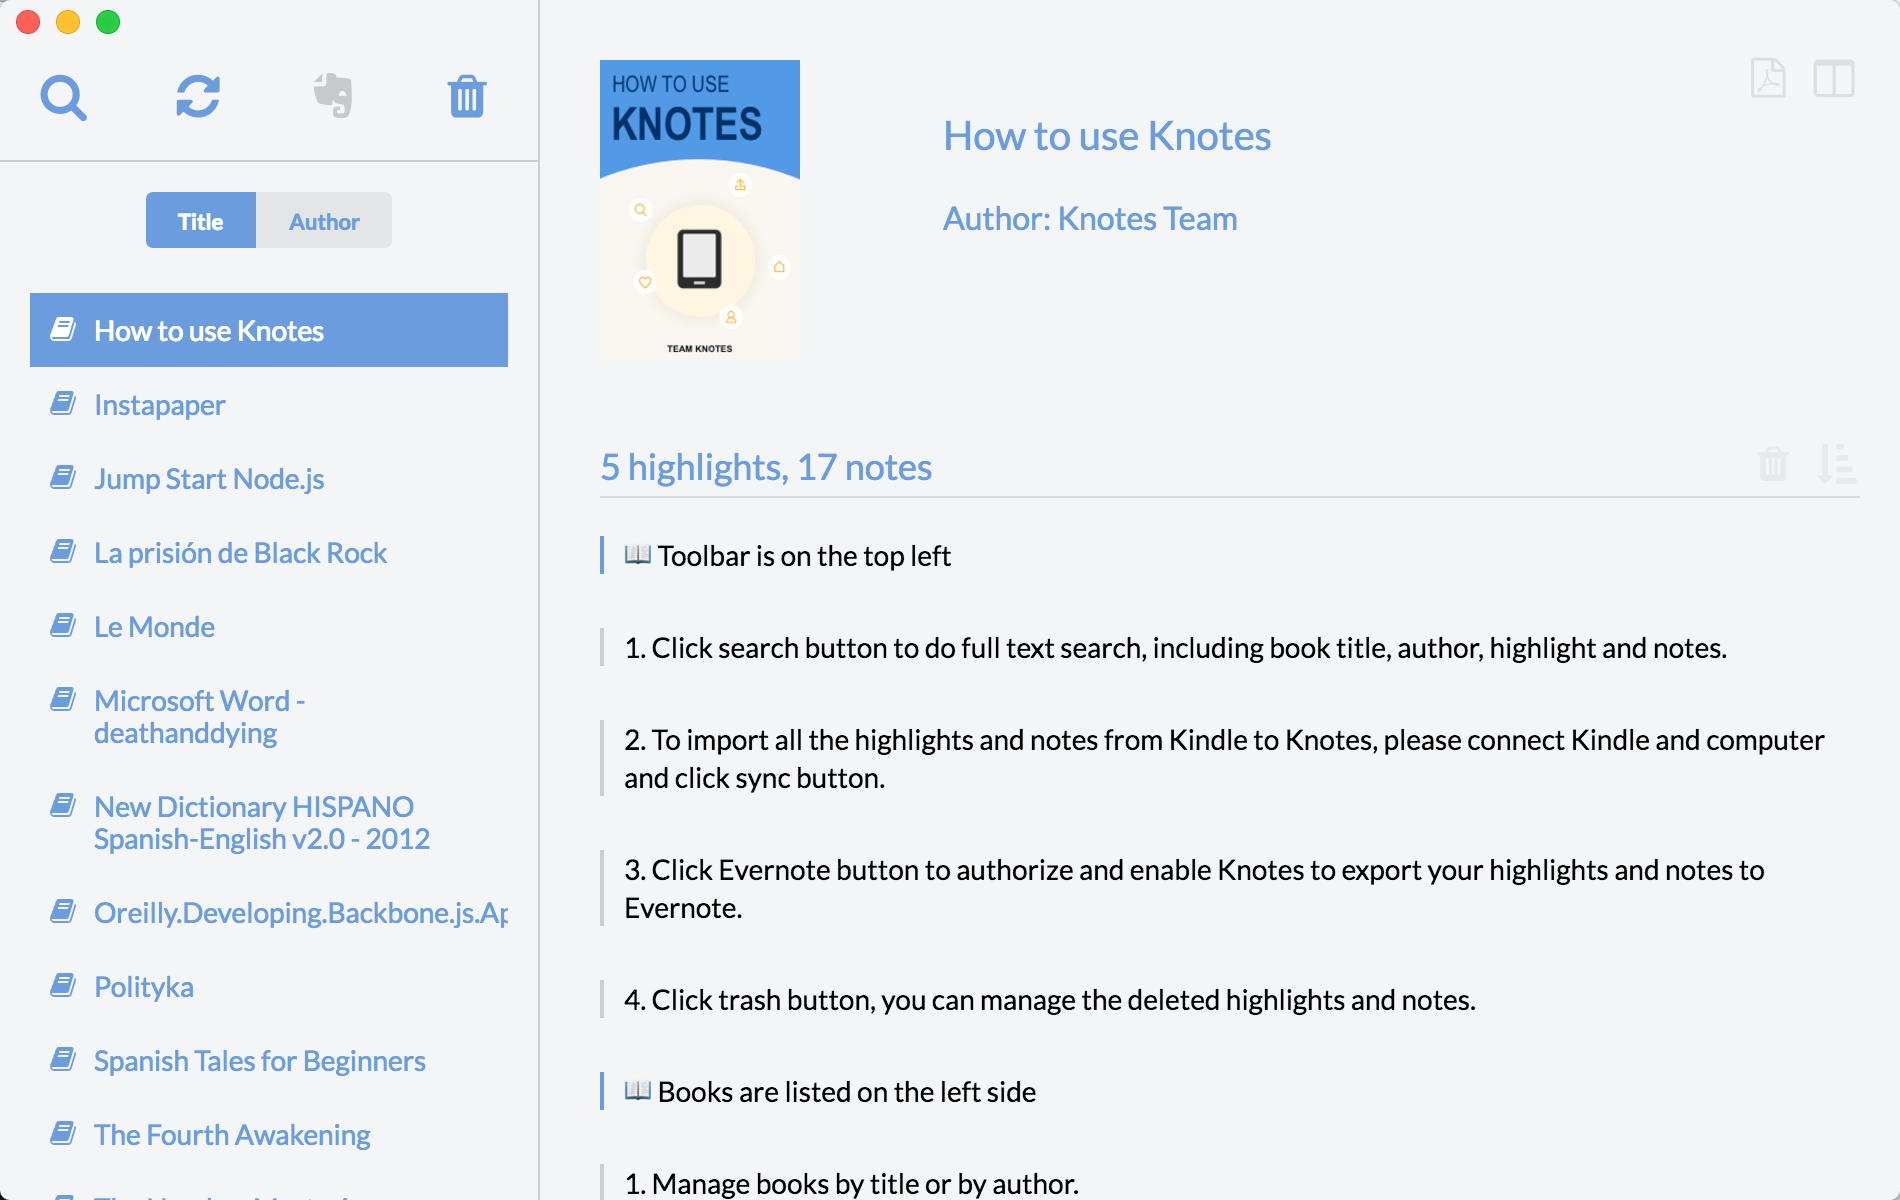 How to use Knotes